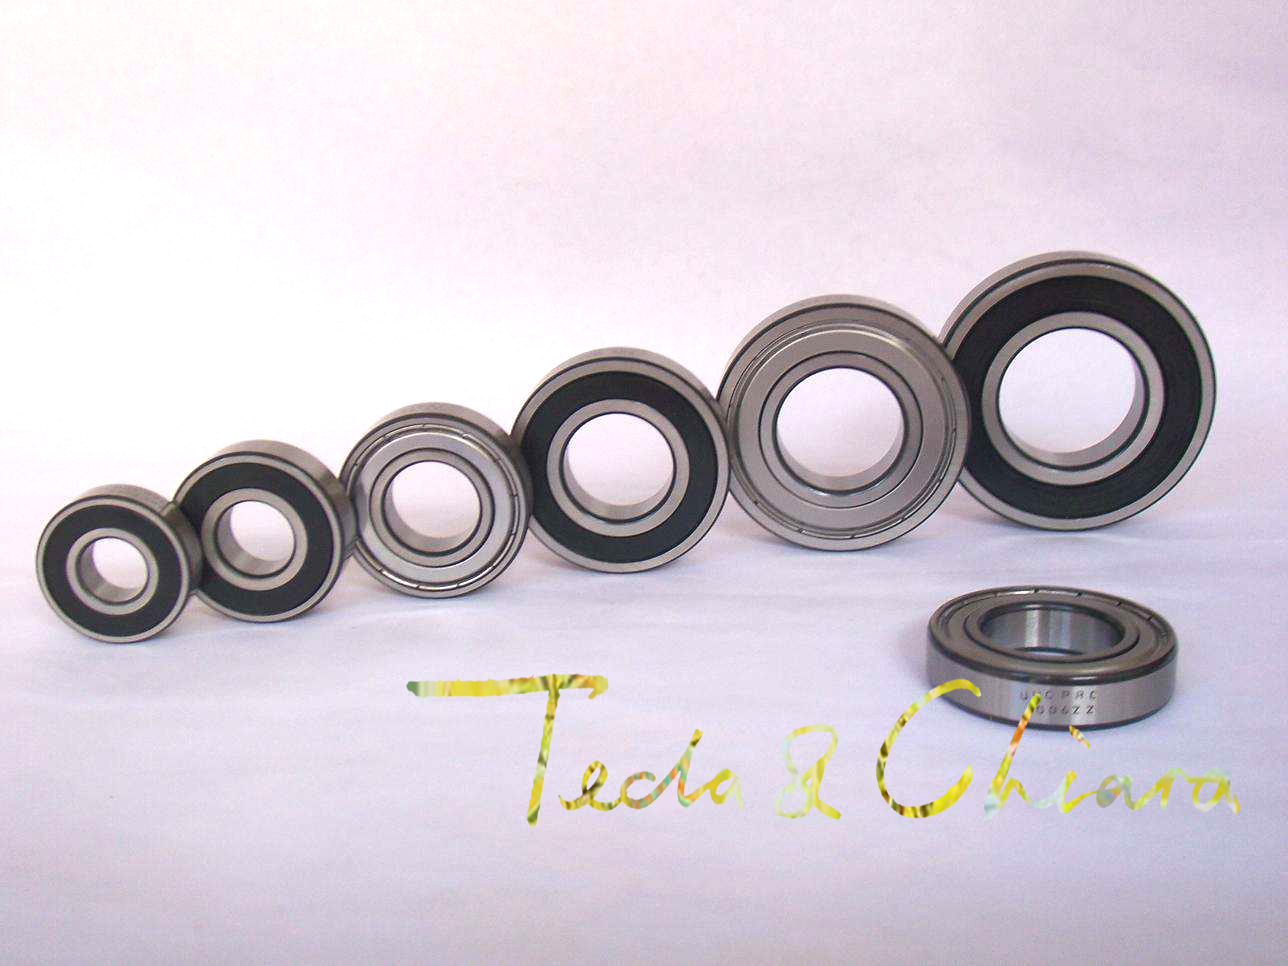 623 623ZZ 623RS 623-2Z 623Z 623-2RS ZZ RS RZ 2RZ Deep Groove Ball Bearings 3 x 10 x 4mm High Quality 6704 6704zz 6704rs 6704 2z 6704z 6704 2rs zz rs rz 2rz deep groove ball bearings 20 x 27 x 4mm high quality